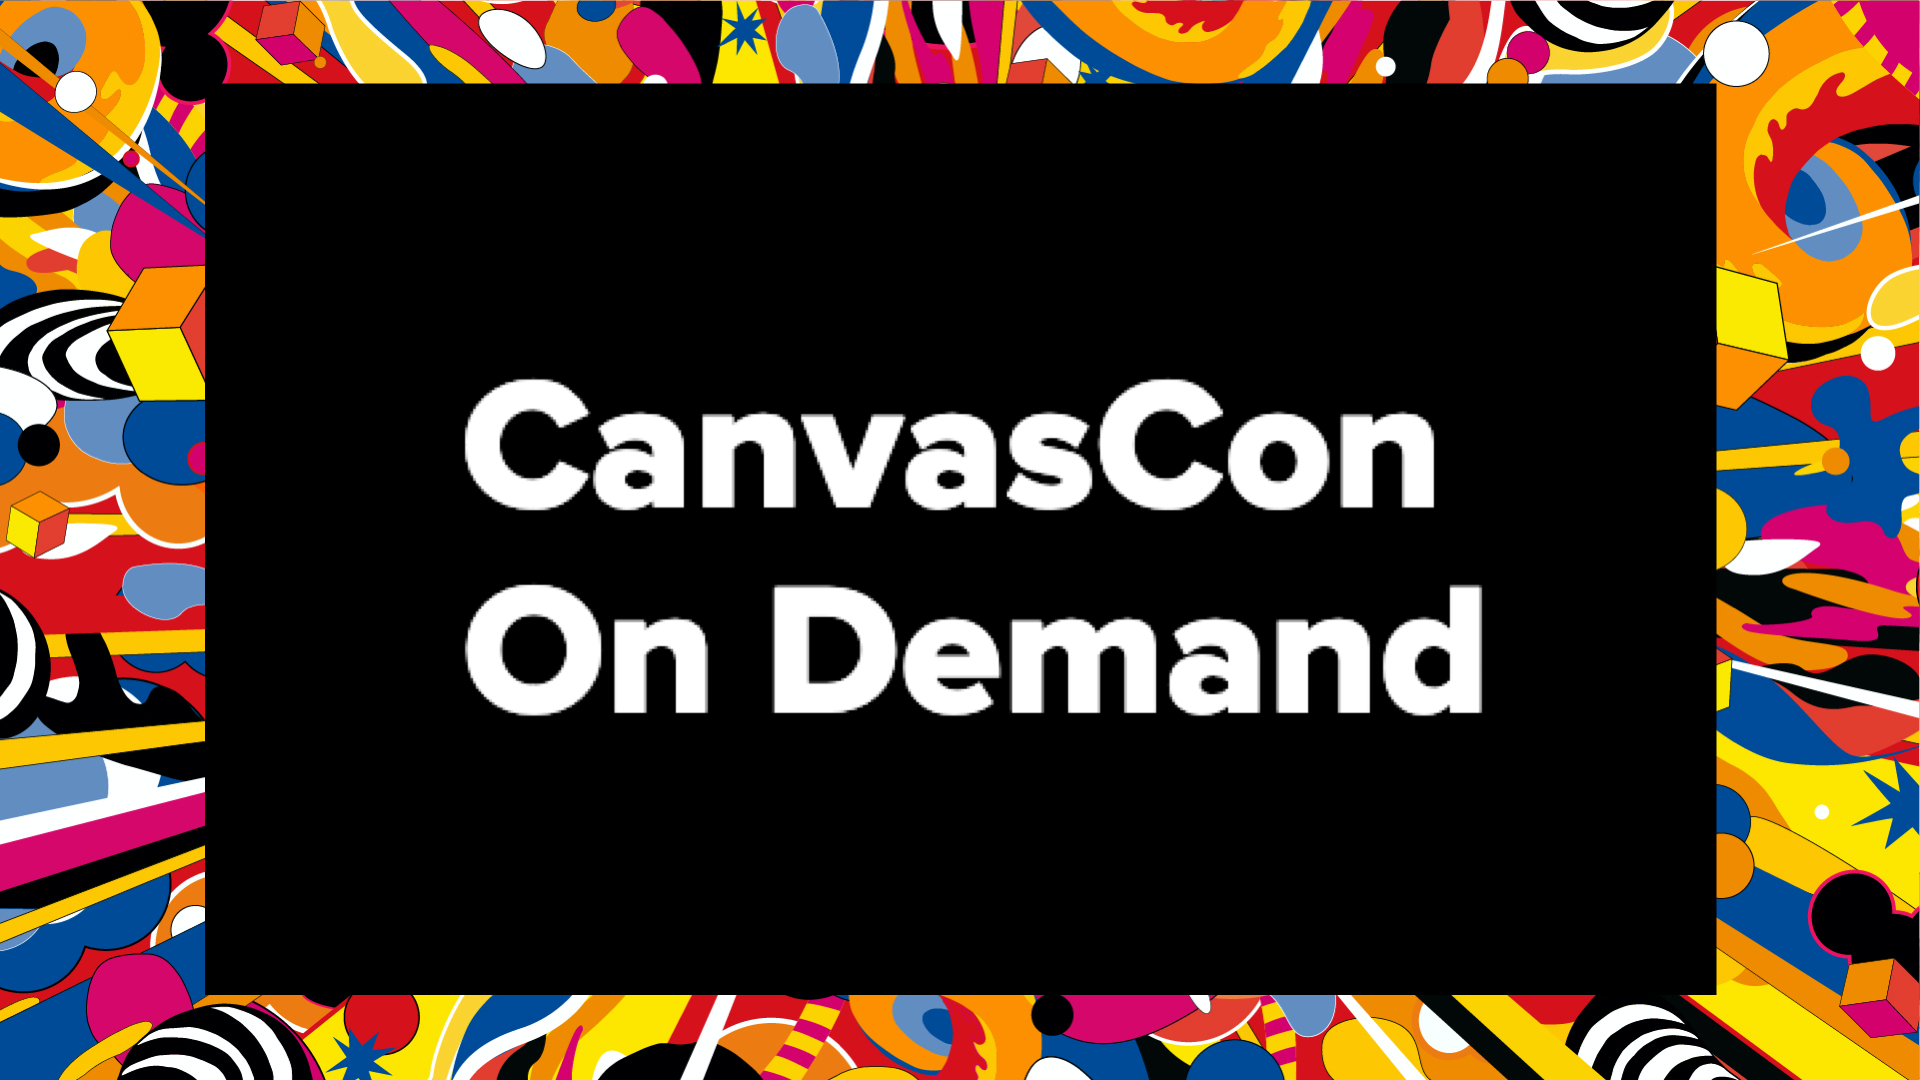 CanvasCon On Demand